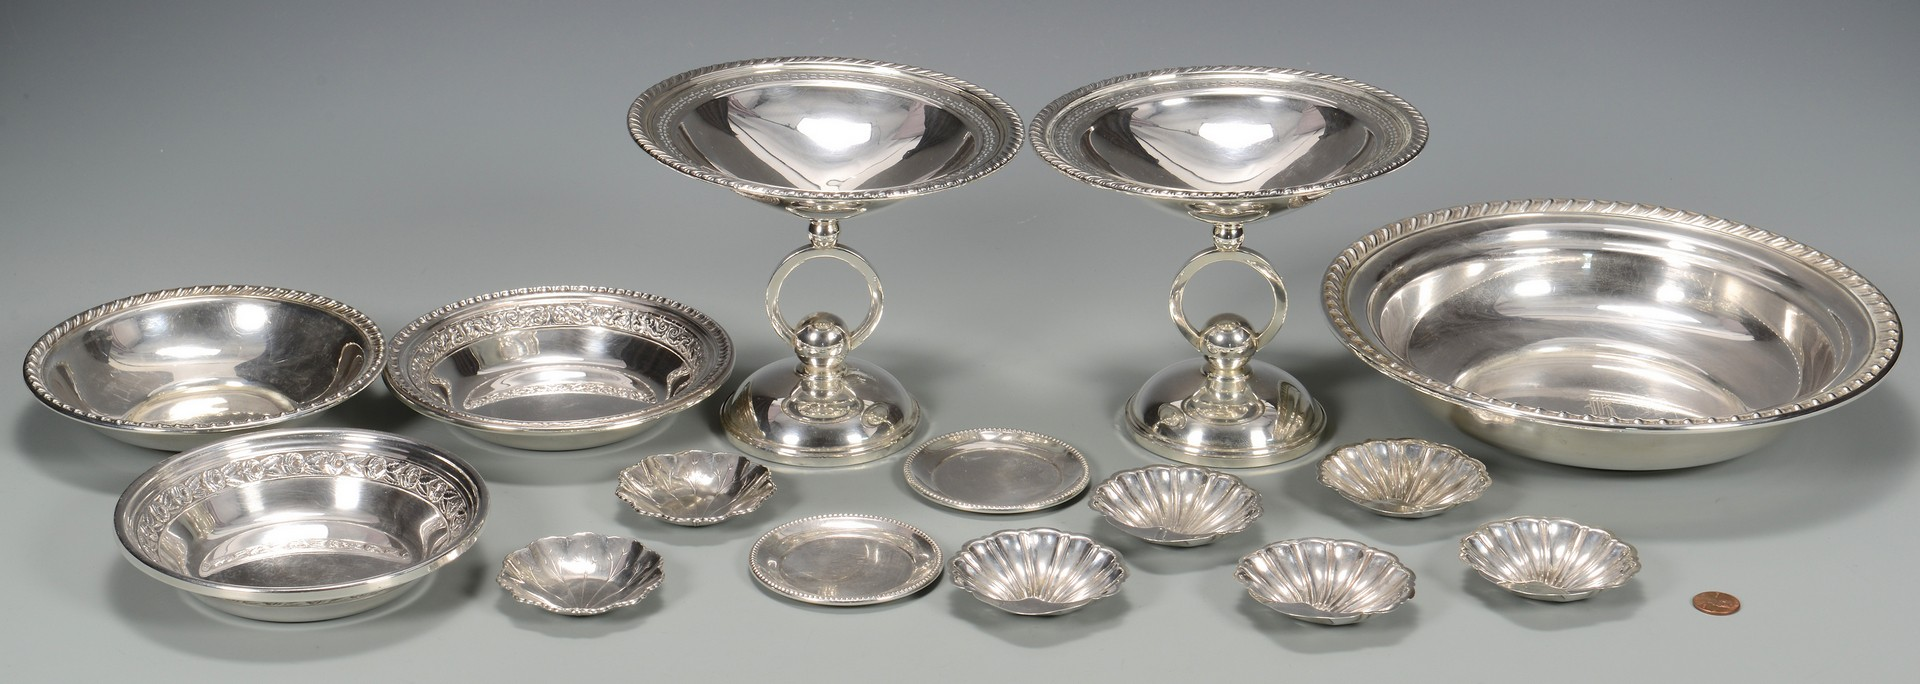 Lot 814: 15 Sterling Silver Table Items